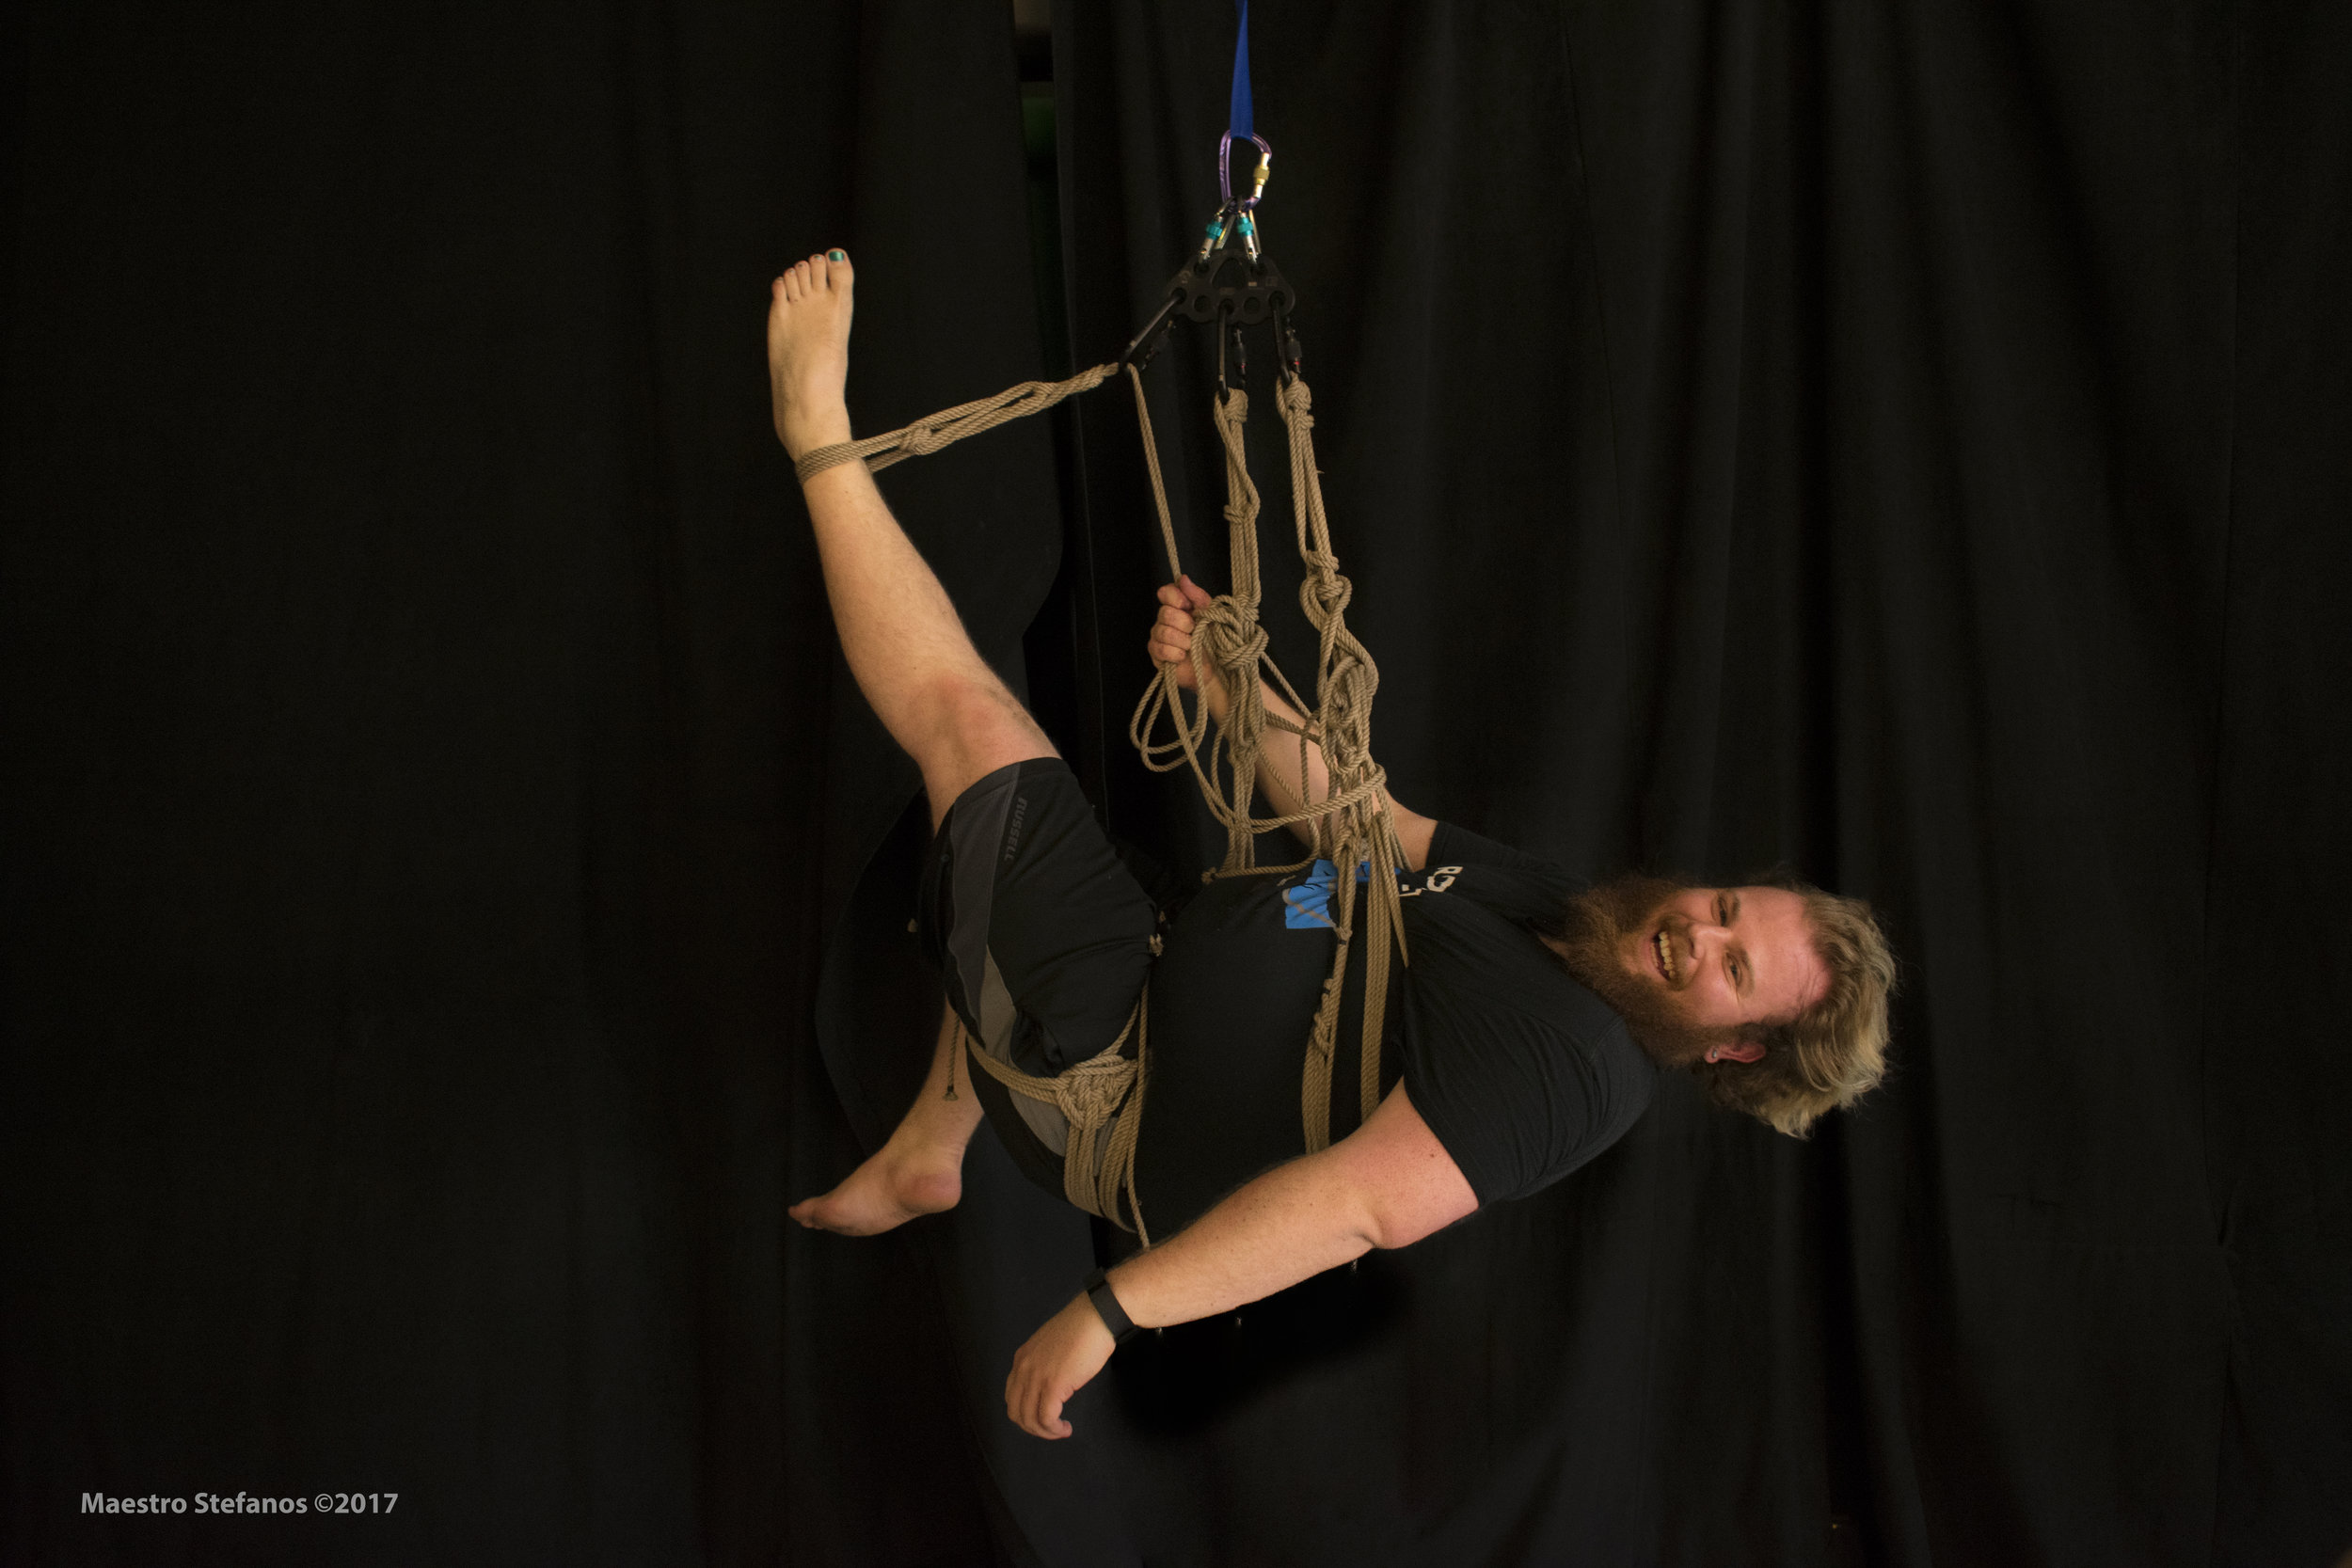 Alex T-Corn, photo by Stefanos at the  SF Self-Suspension Open Space